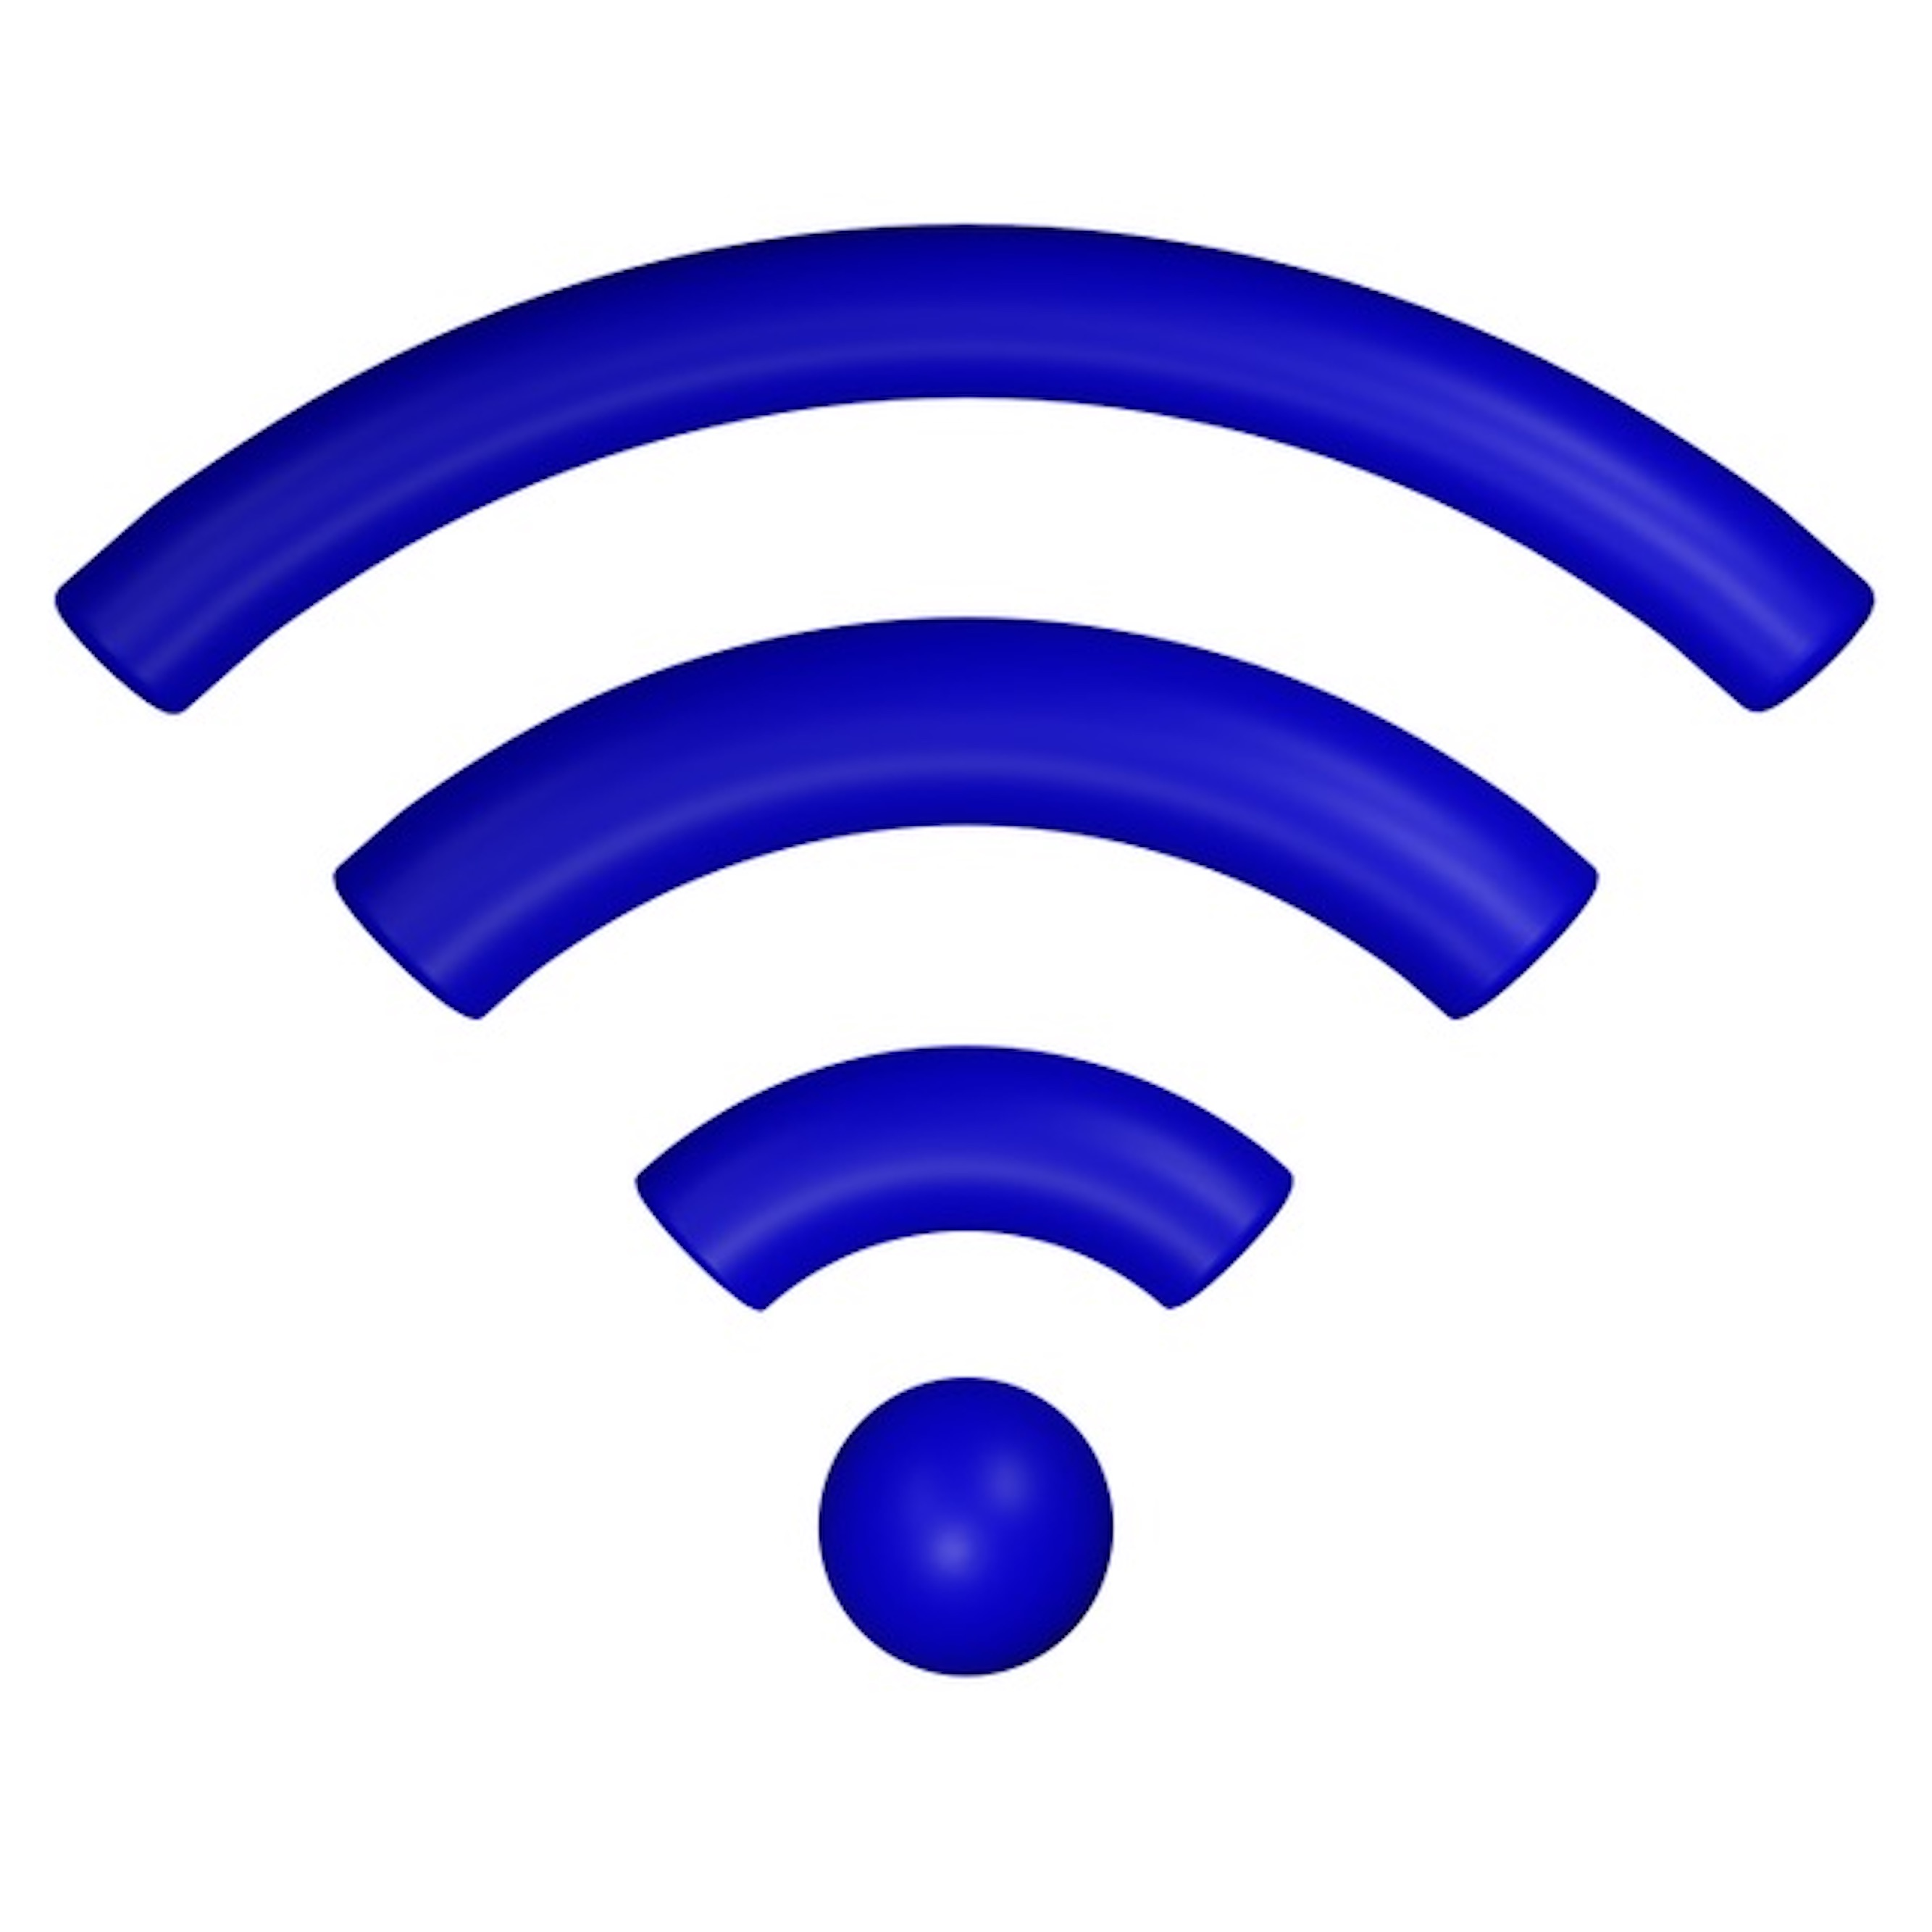 Tip 1: Be Smart About Using Wi-Fi Hotspots